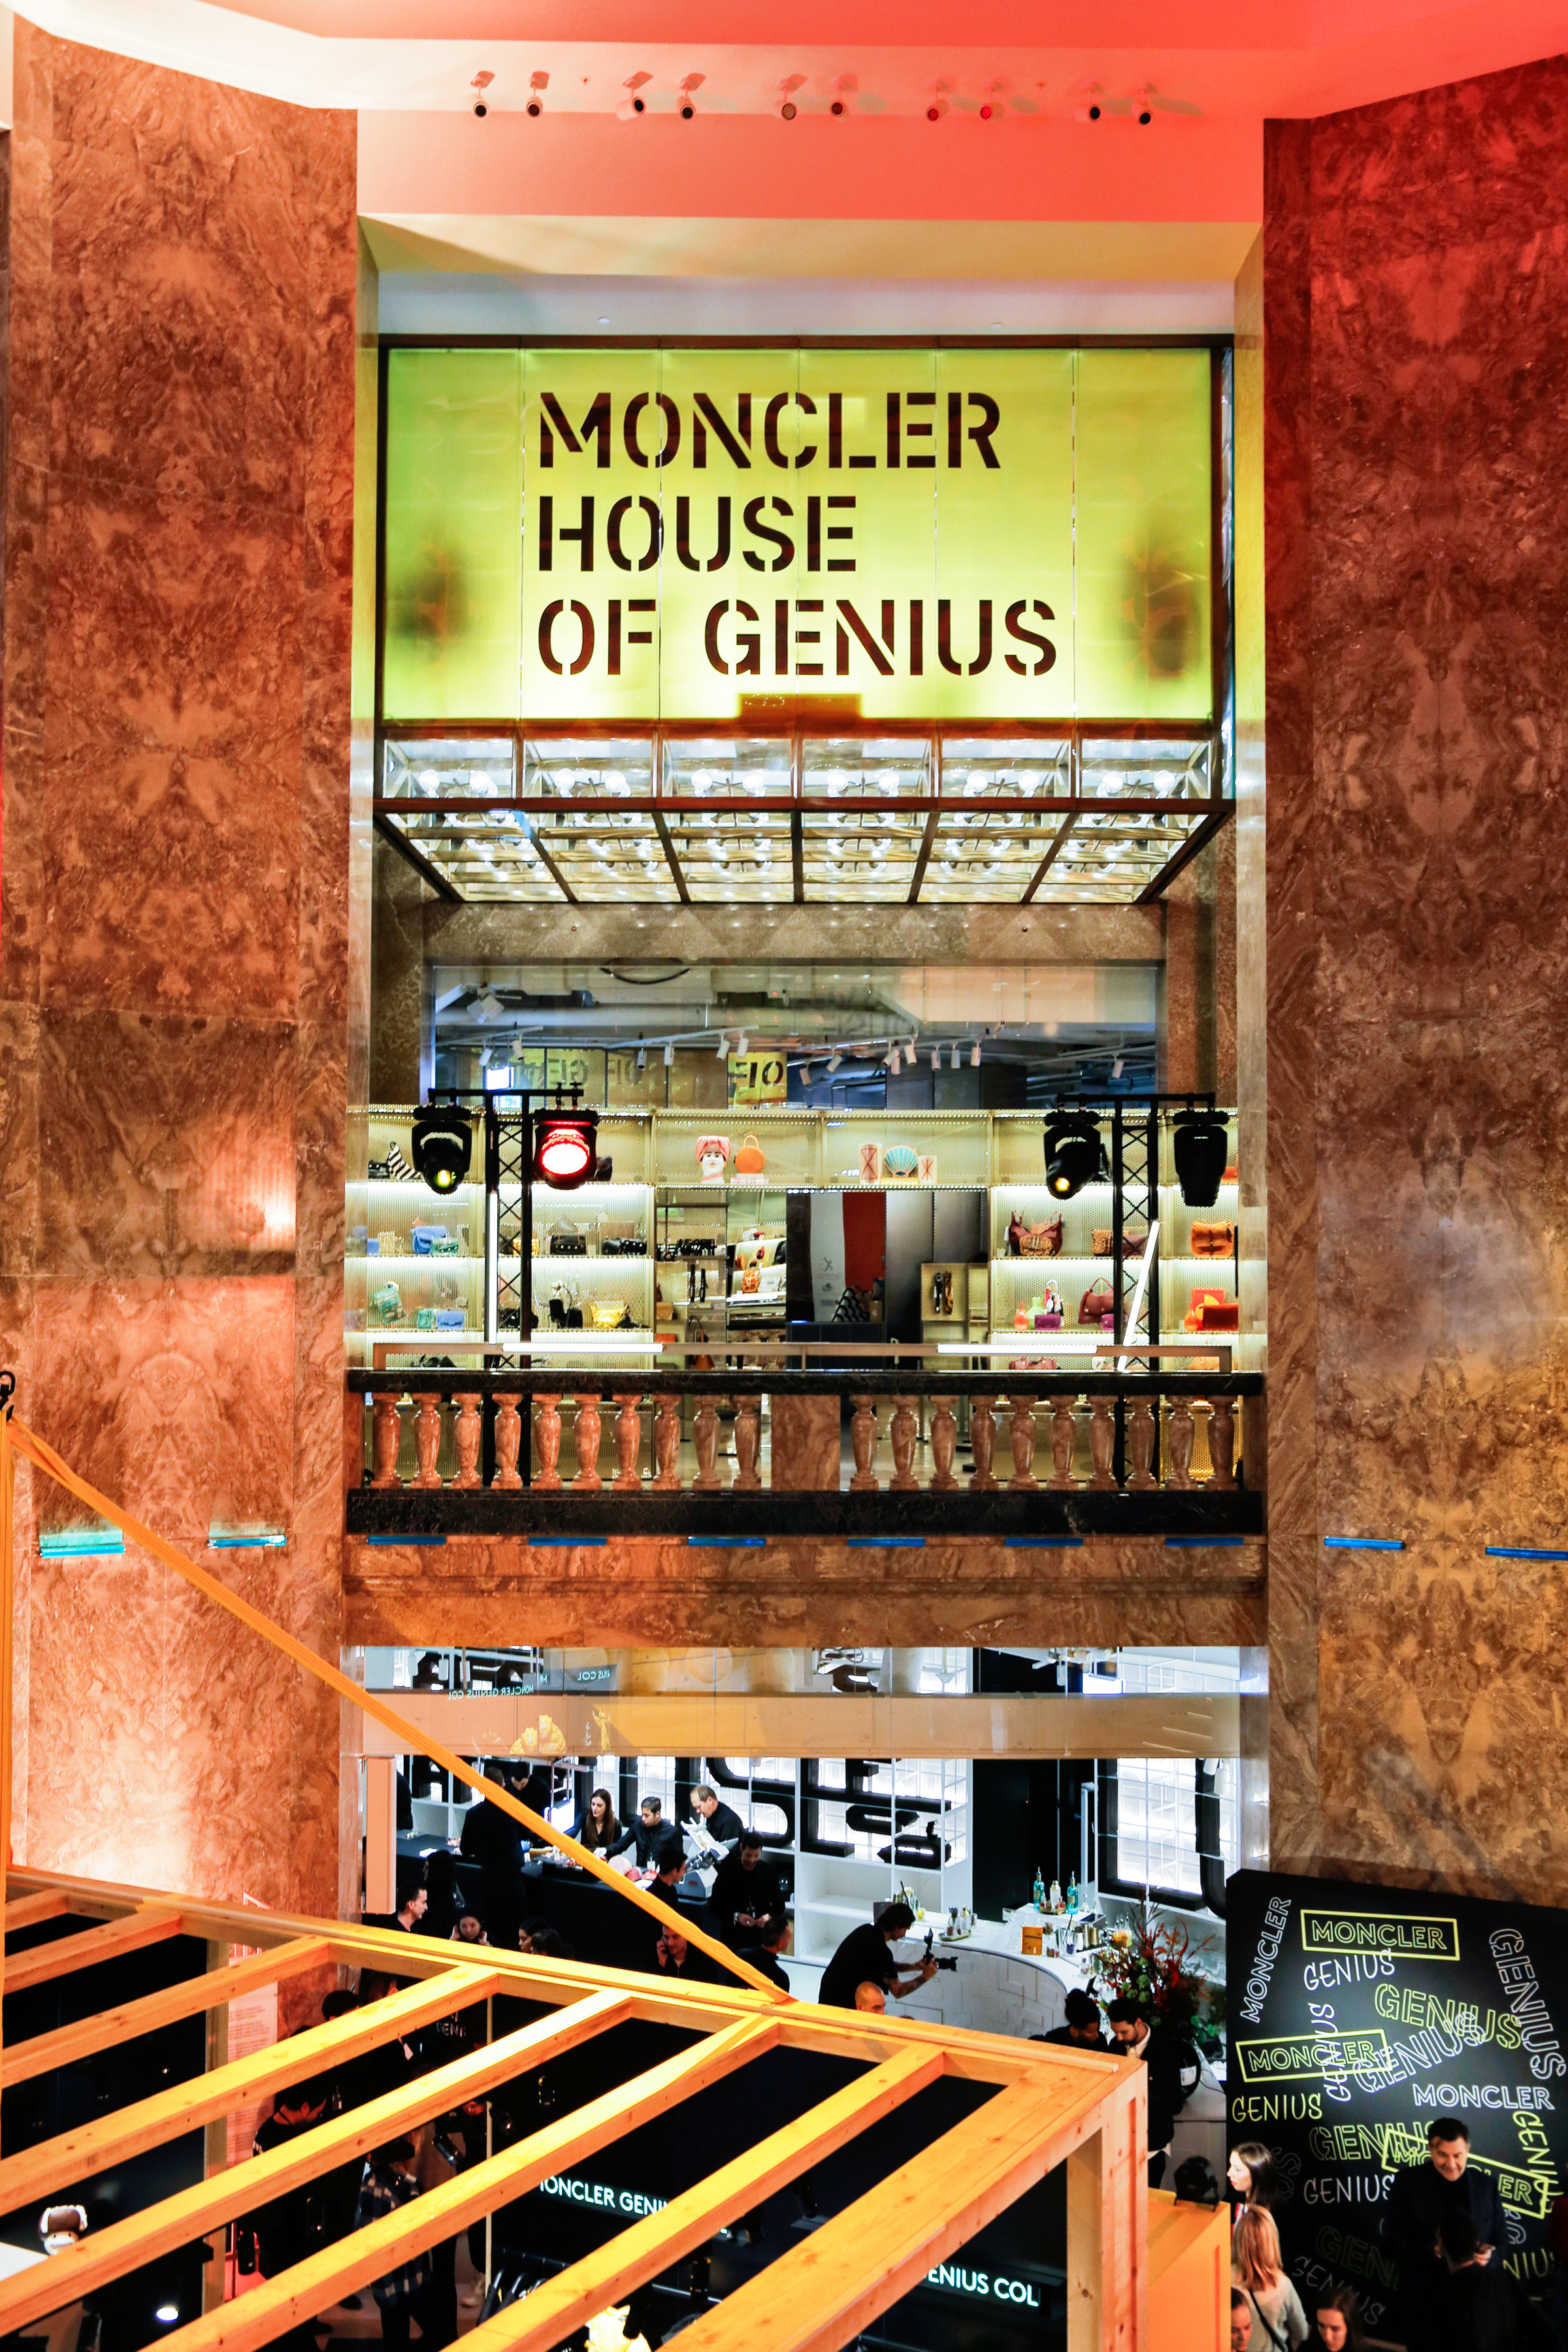 Monlcer House of Genius